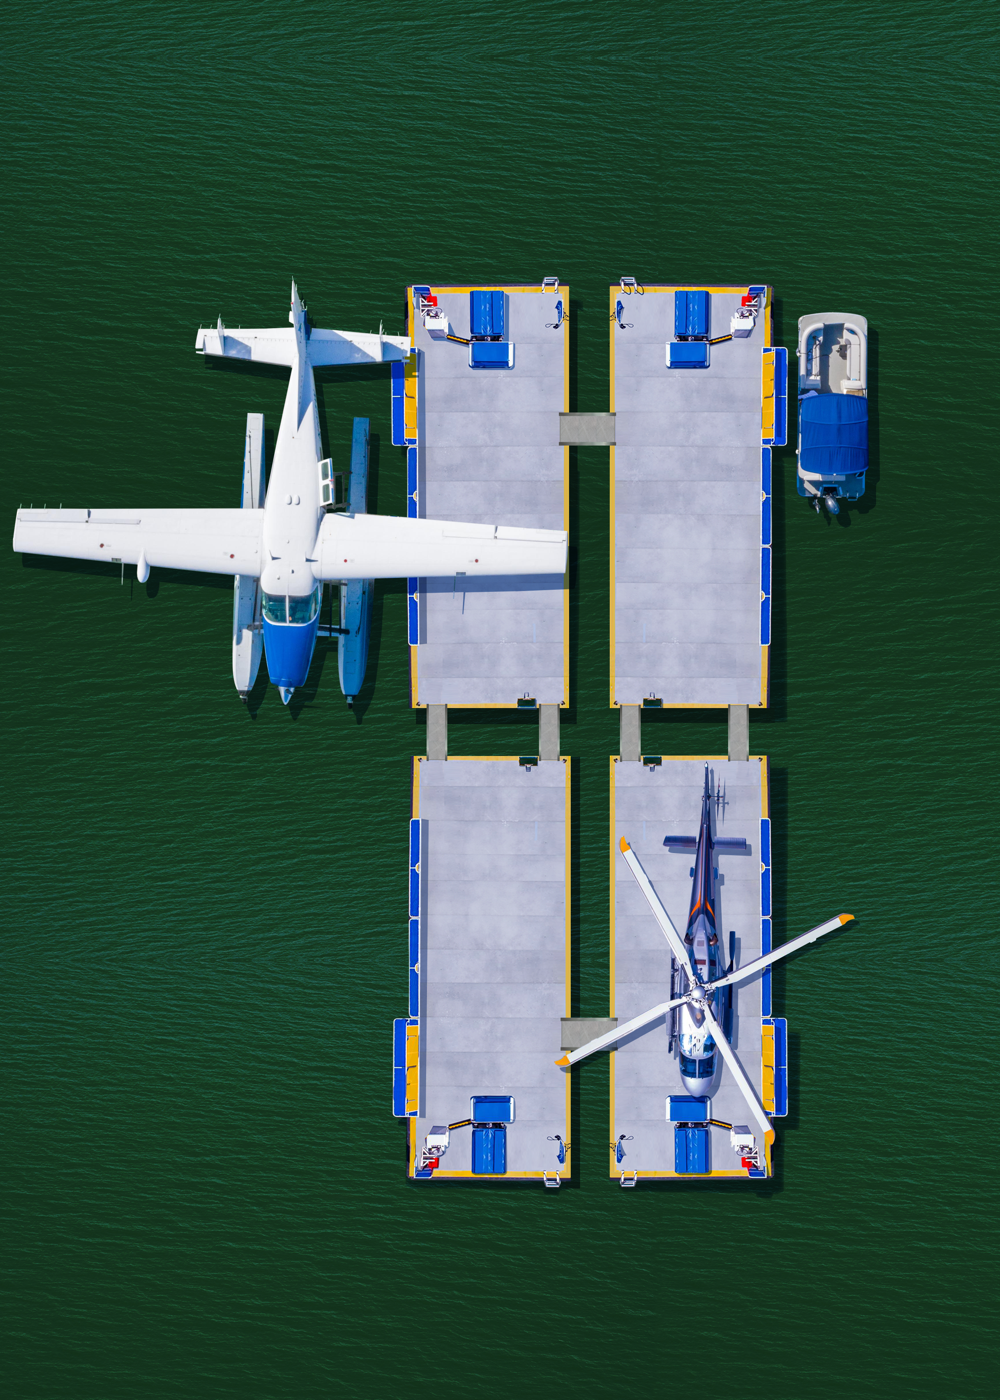 ILandMiami City Modular MUV with helicopter and seaplane